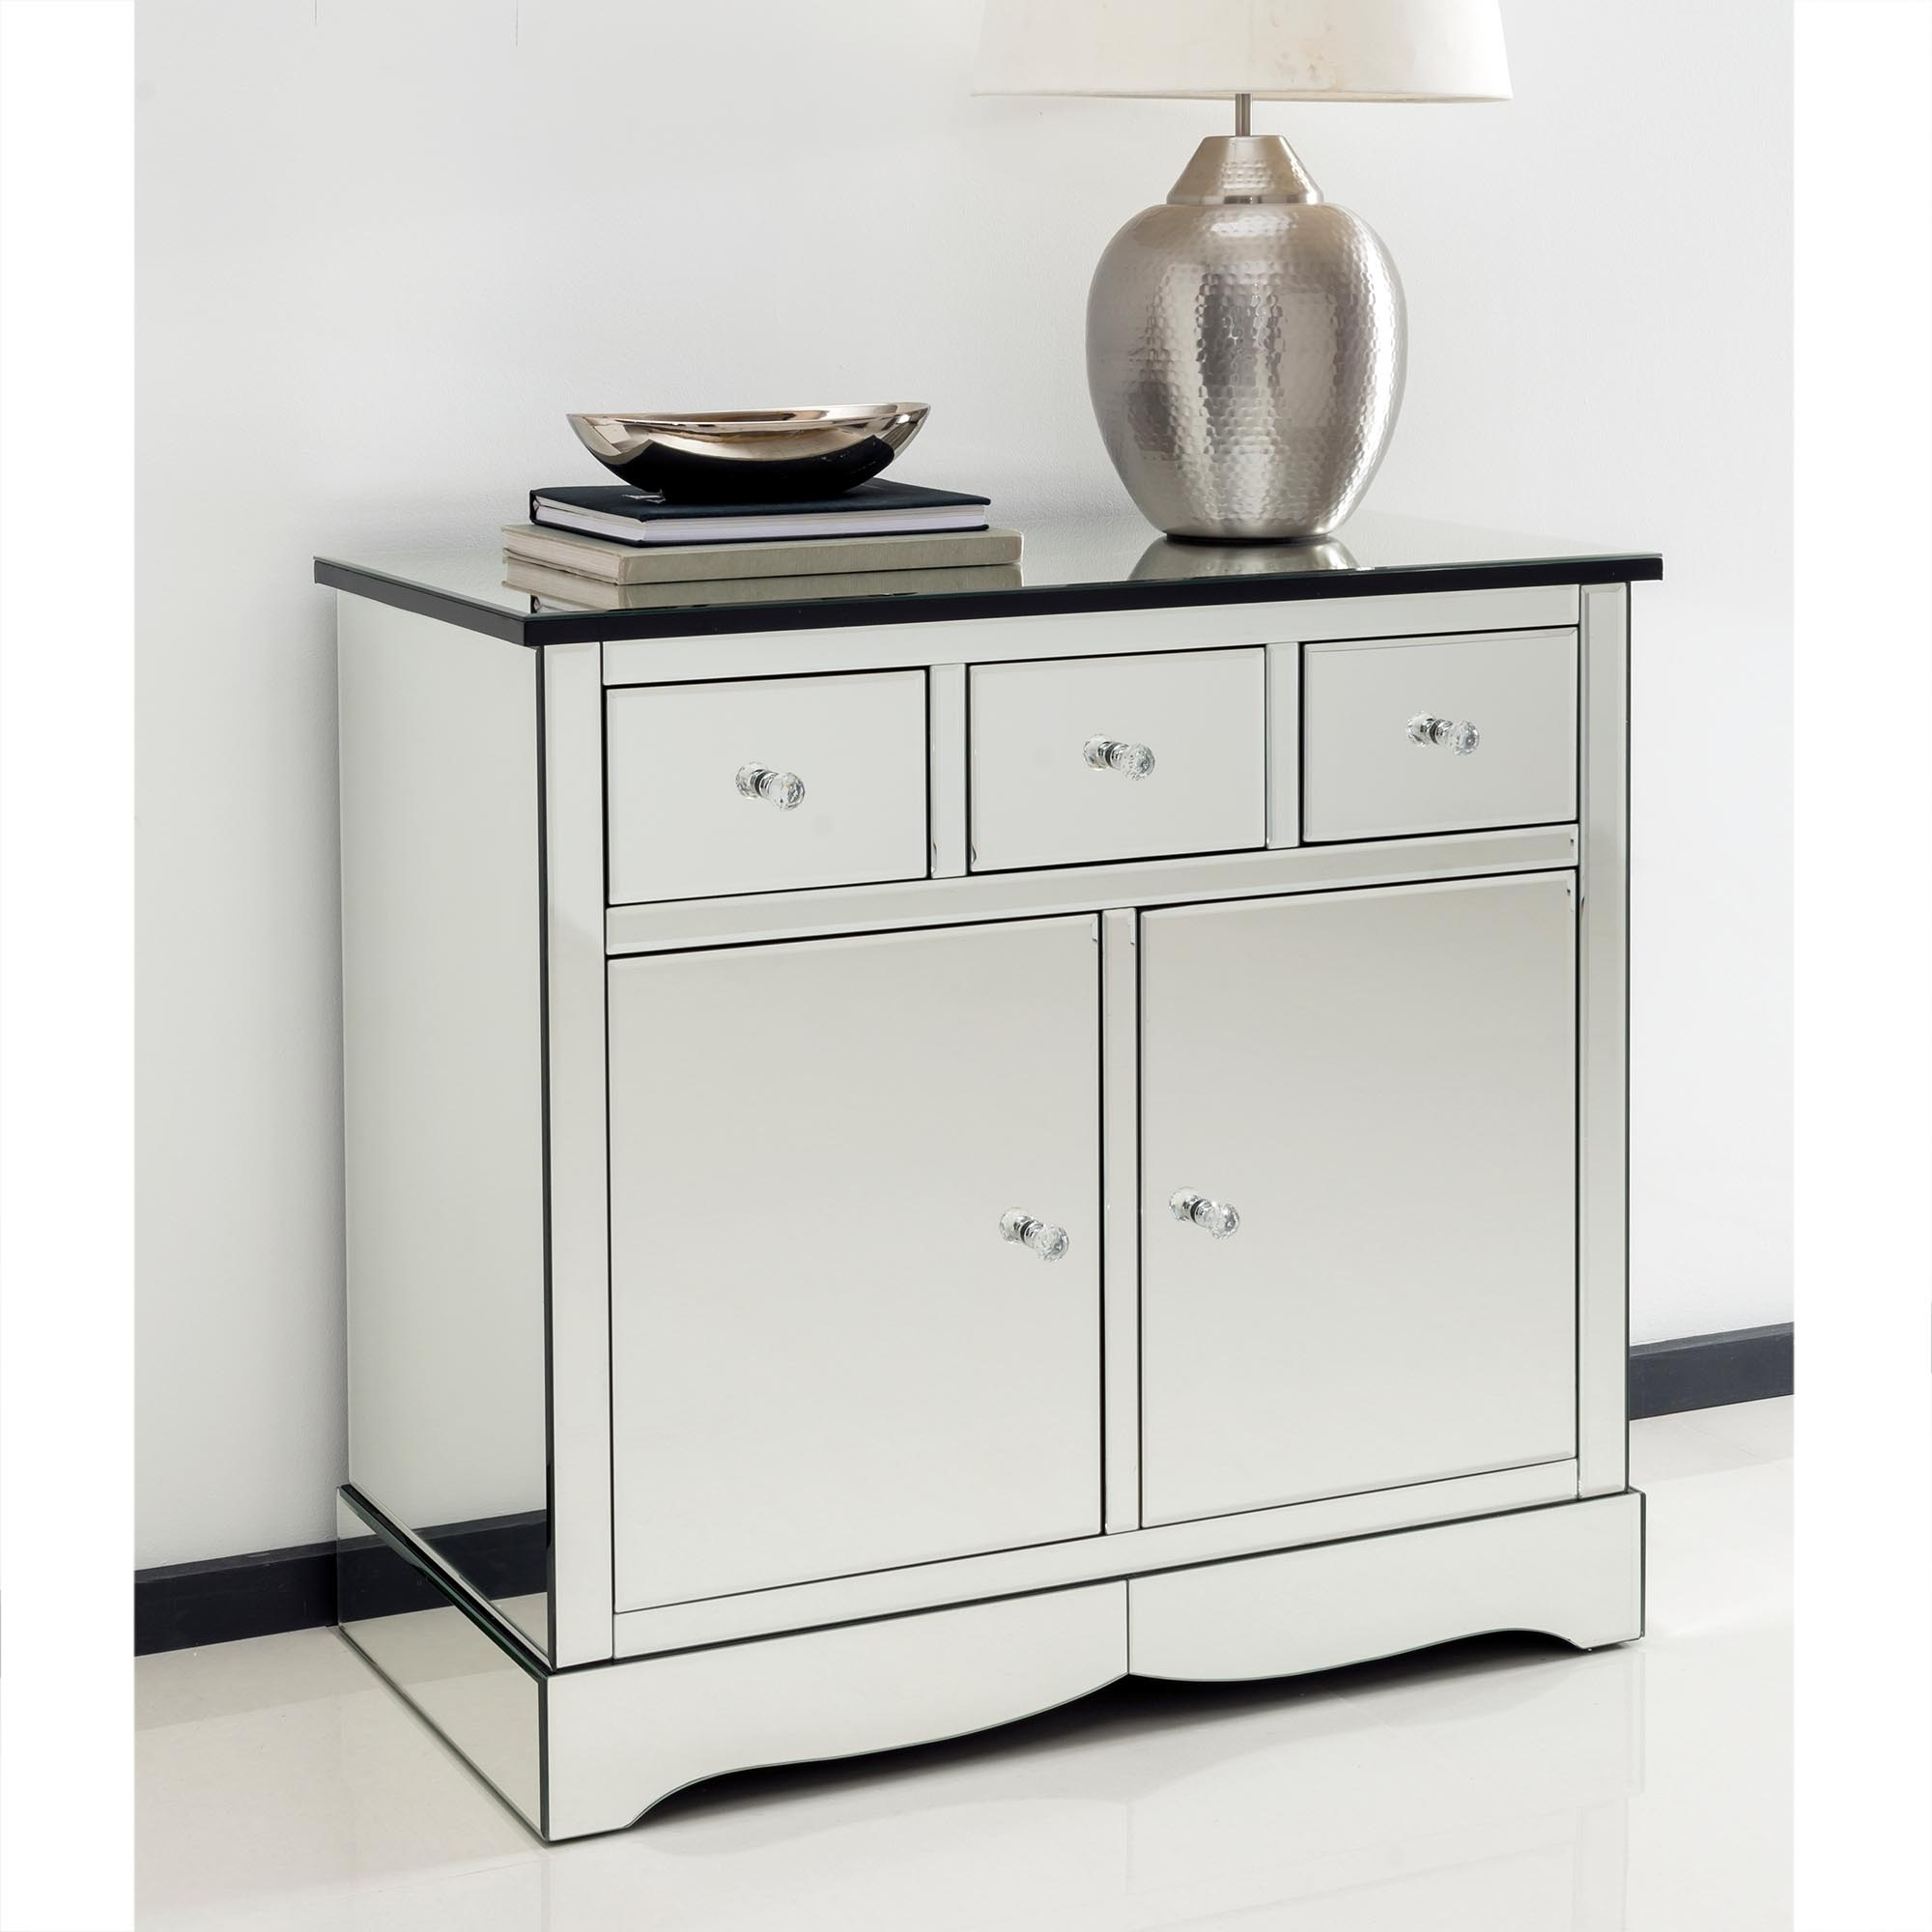 Romano crystal mirrored cabinet with cupboards drawers for Mirrored console with drawers